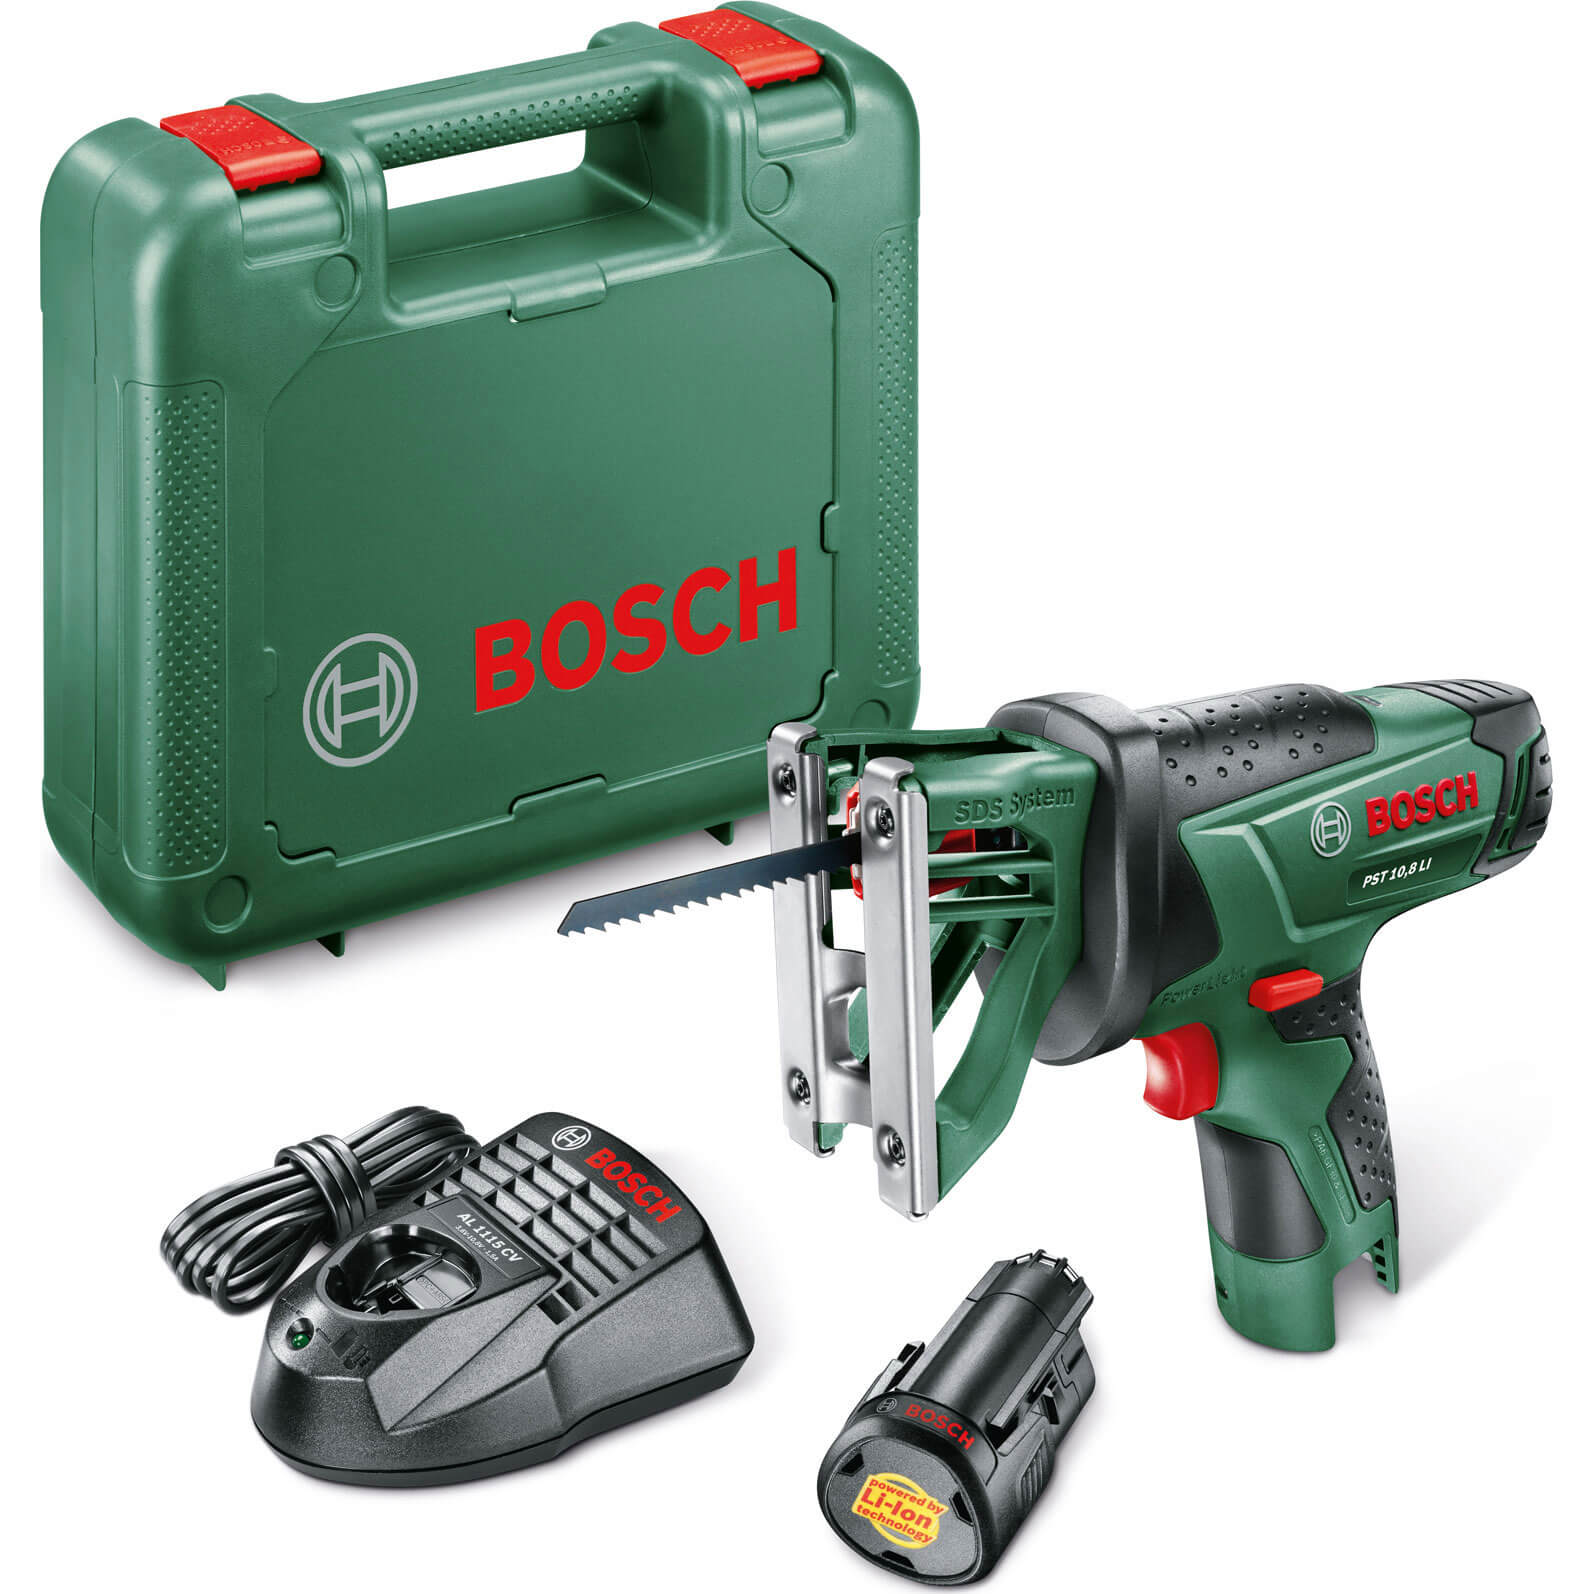 zzz bosch power4all pst 10 8 li cordless jigsaw reciprocating saw with 1 li ion battery. Black Bedroom Furniture Sets. Home Design Ideas